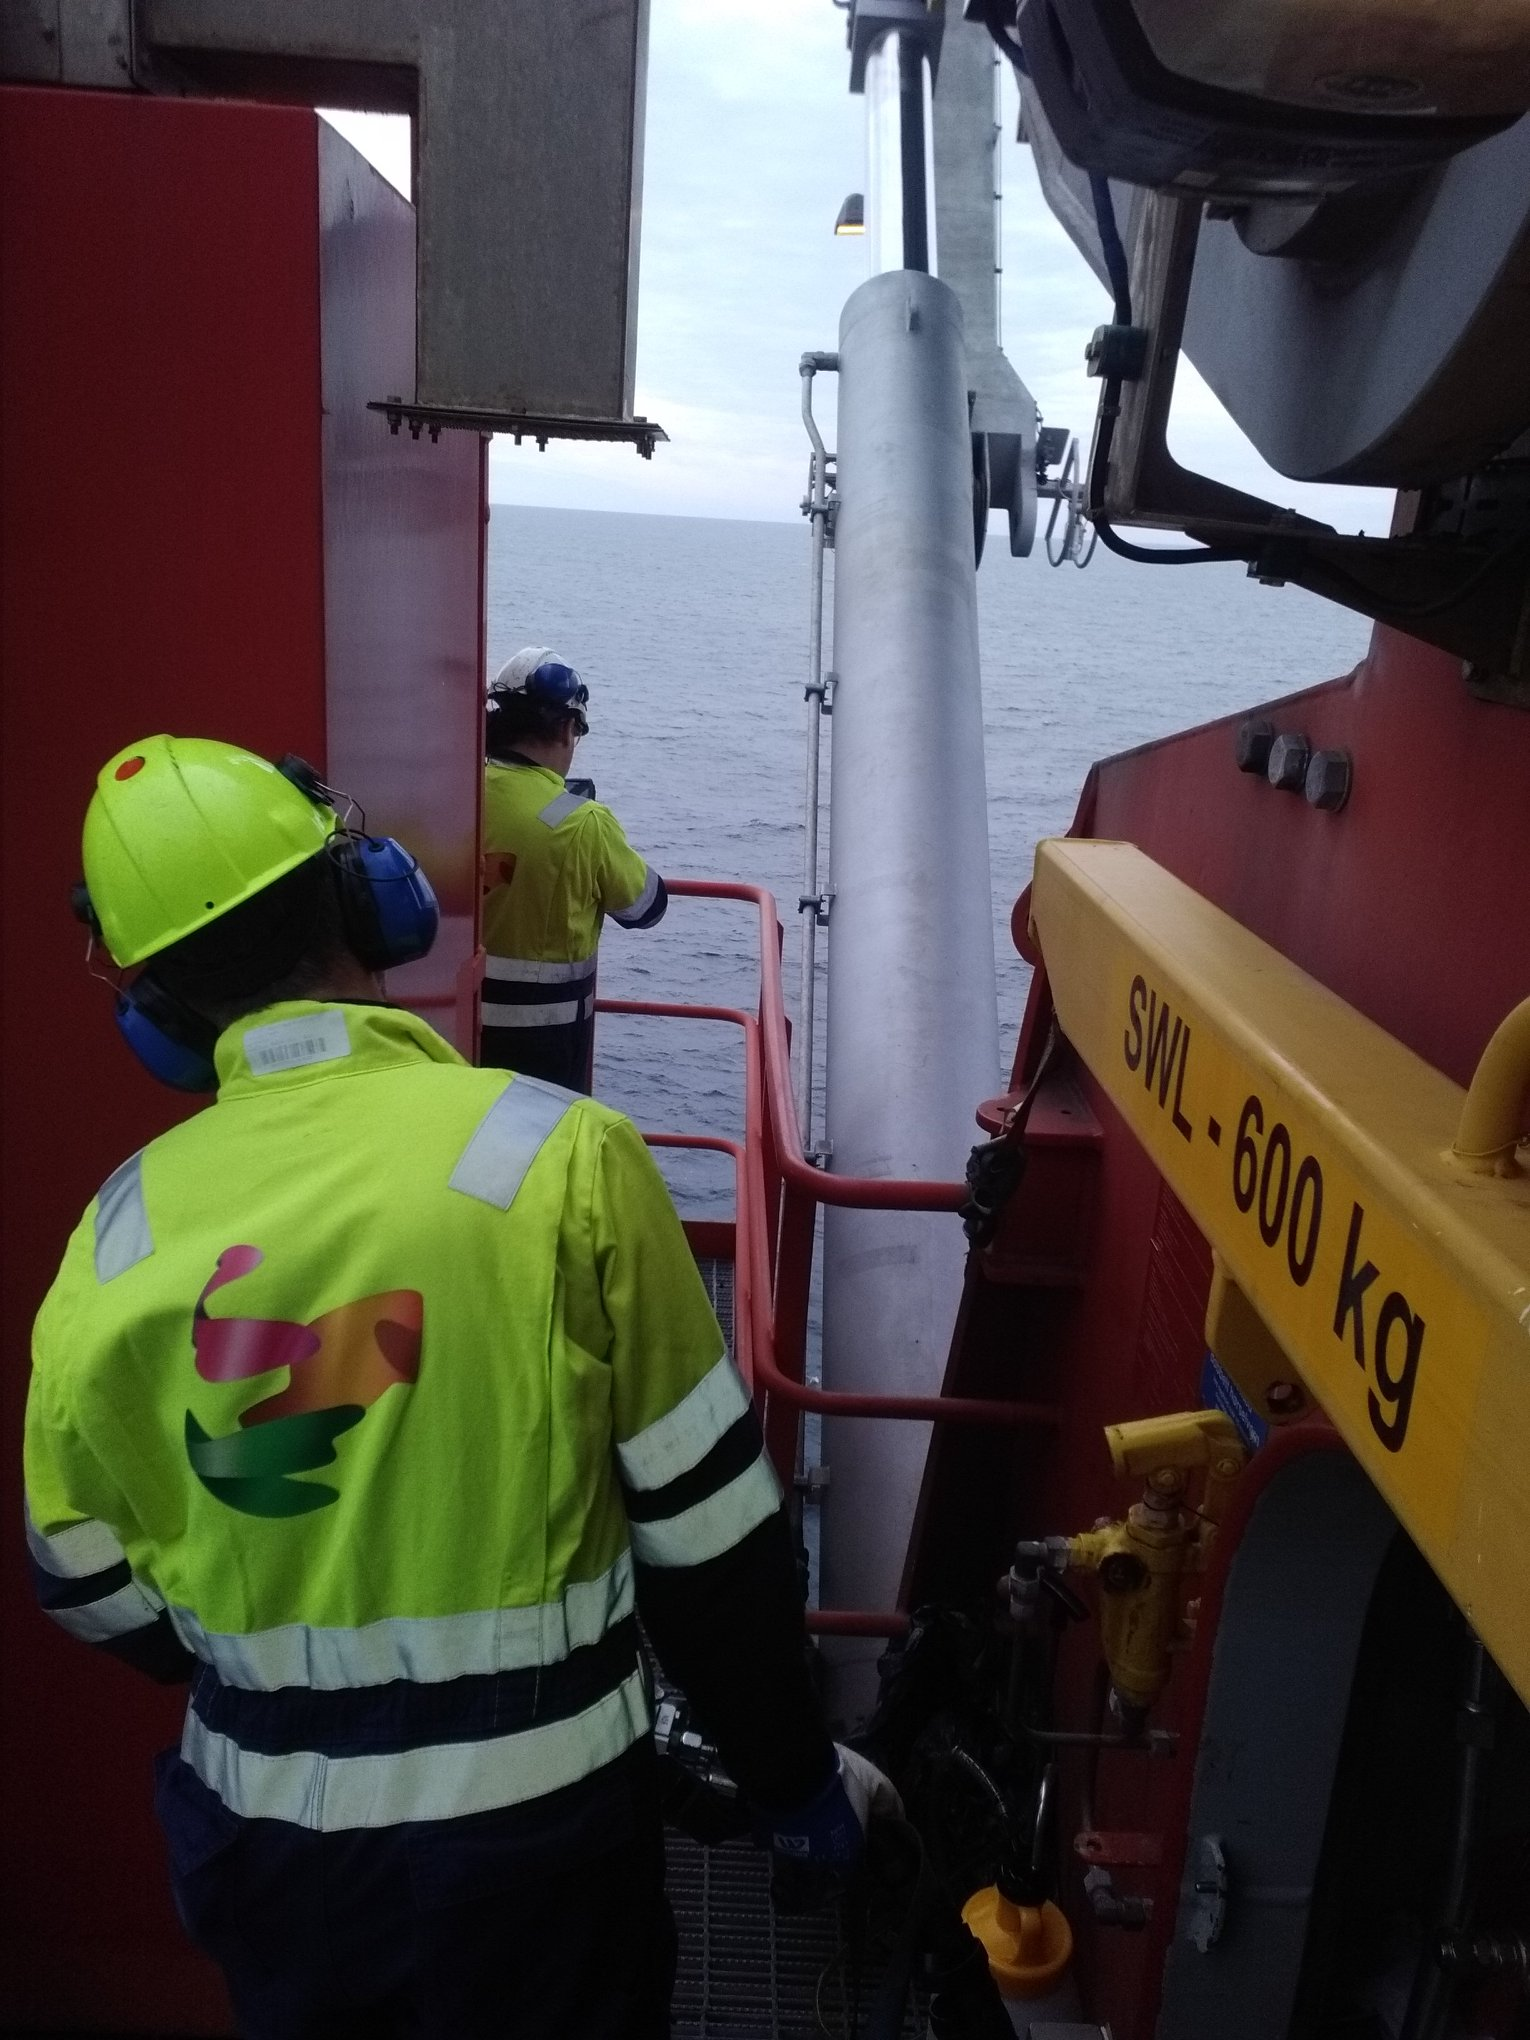 DNV GL and Aker BP successfully perform remote surveys of offshore cranes as demand for distanced inspections accelerates